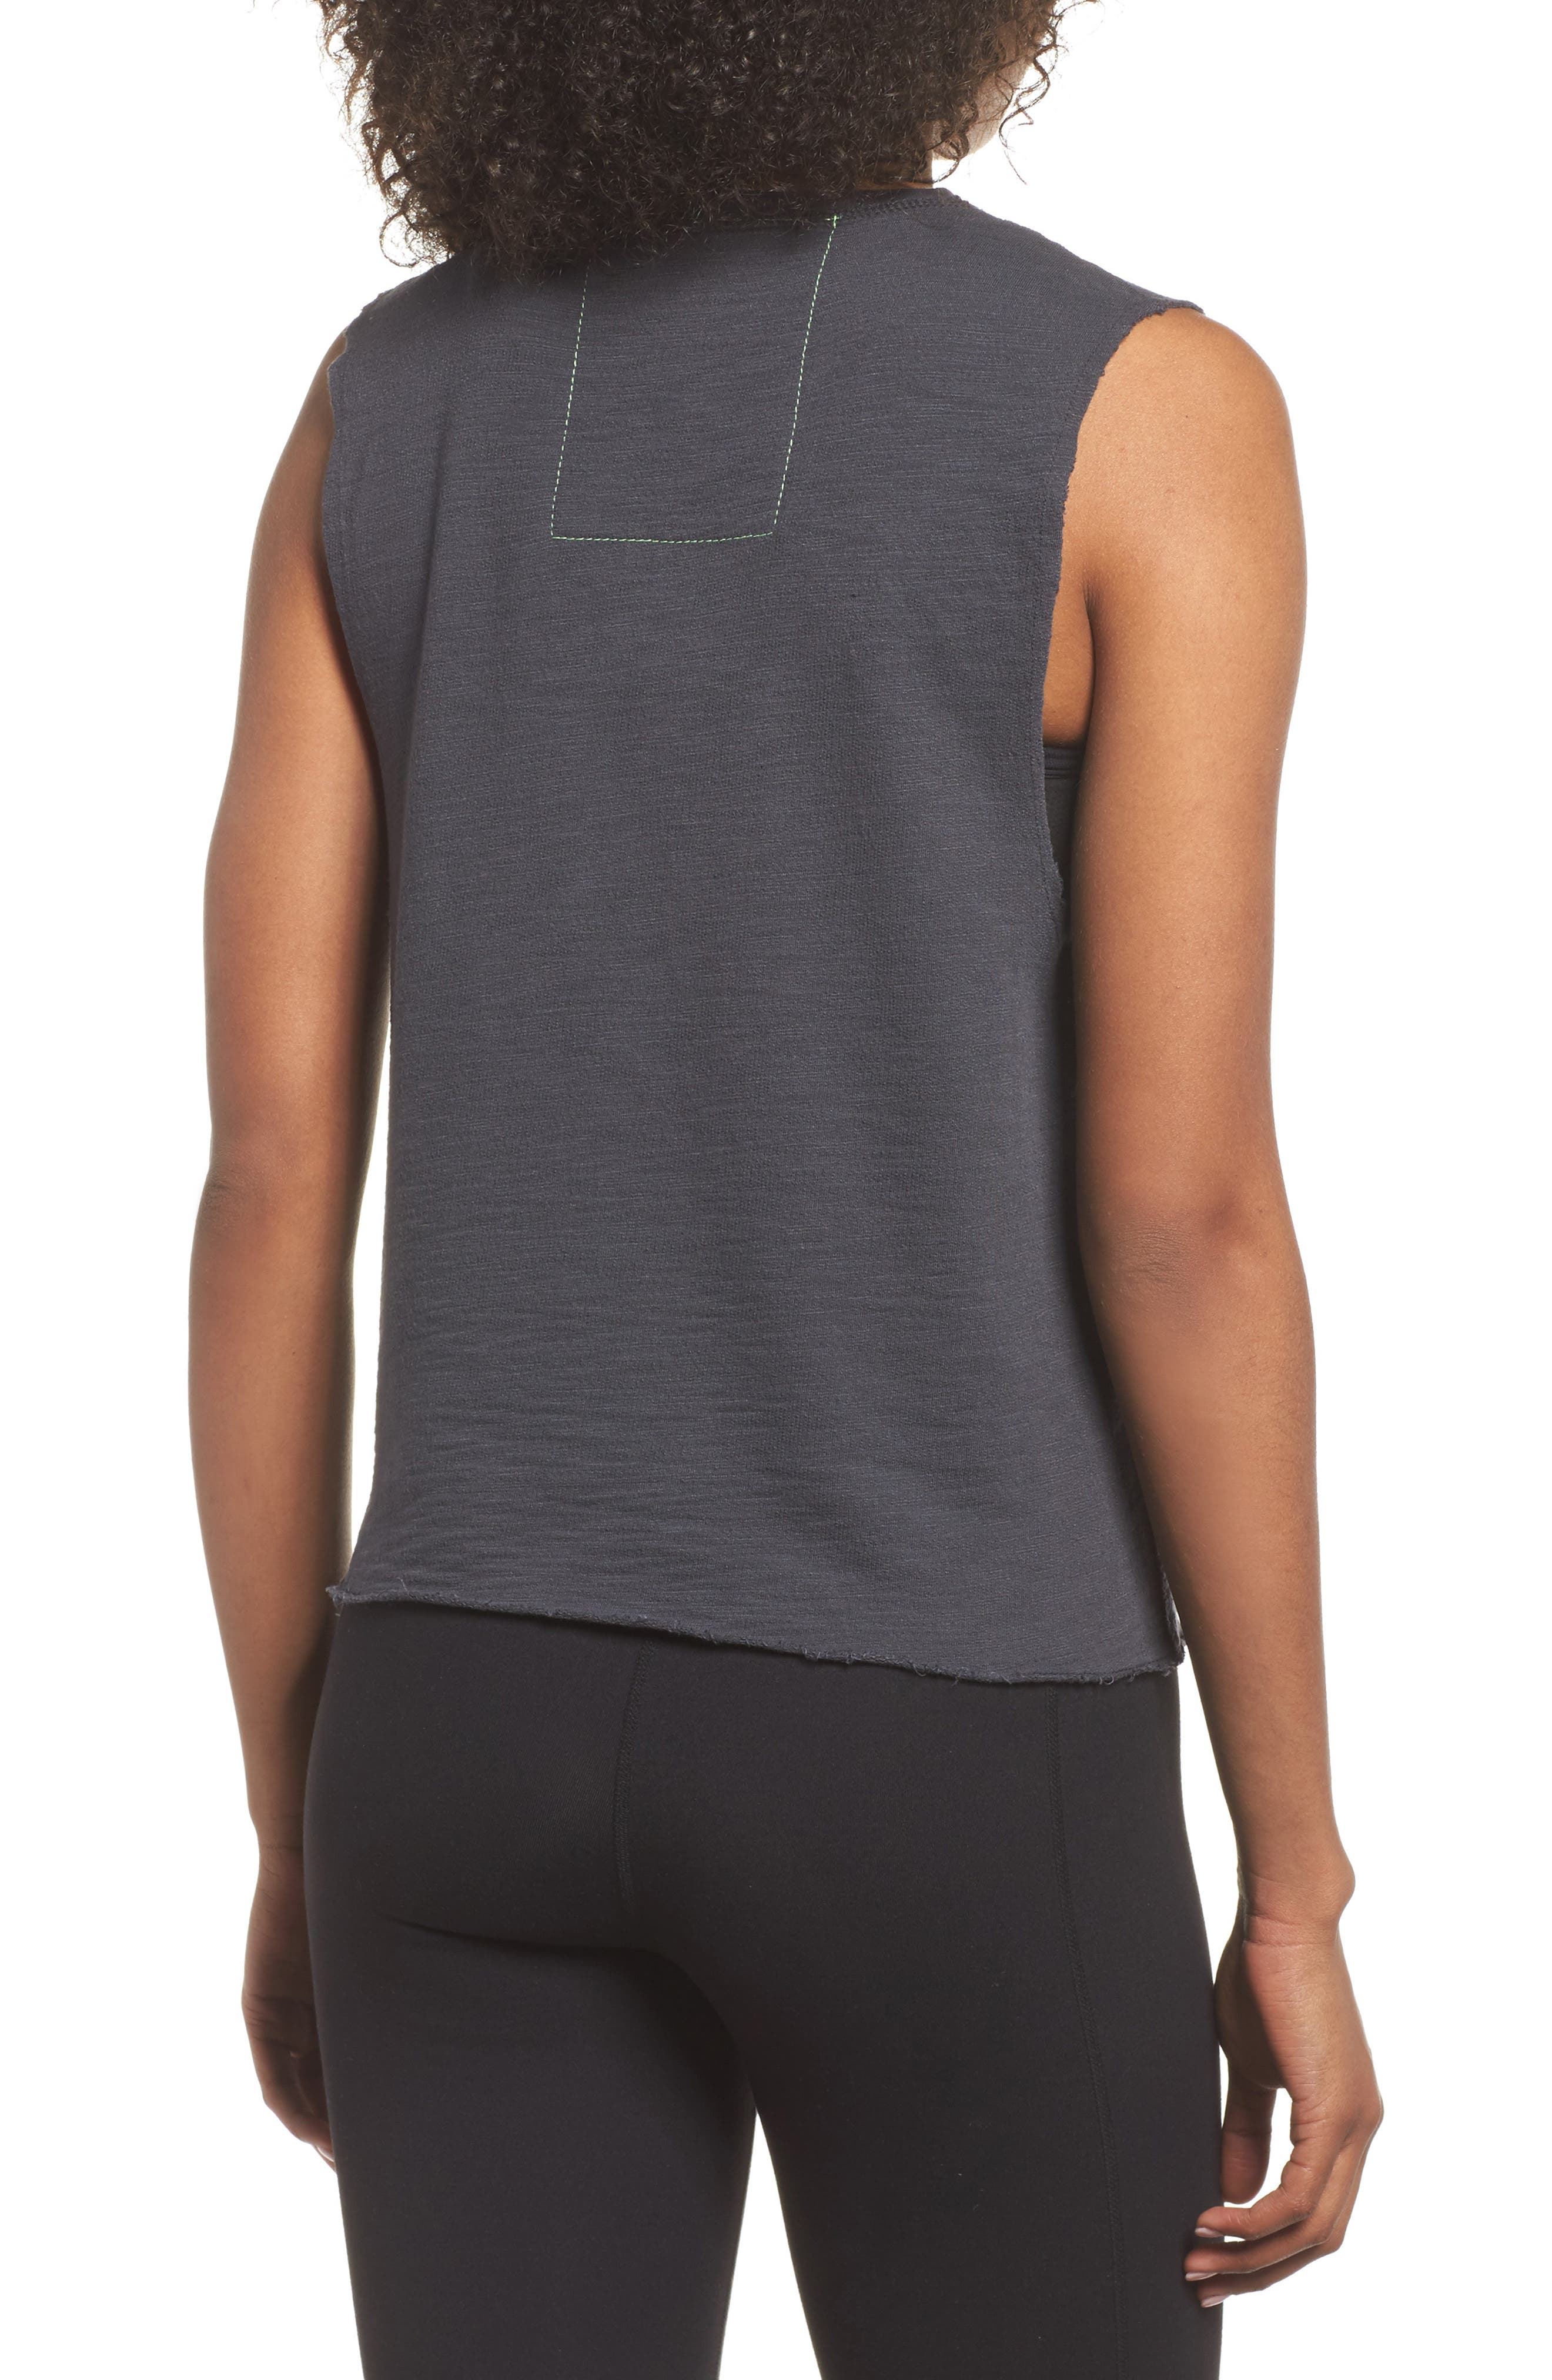 Smiley Muscle Tee,                             Alternate thumbnail 2, color,                             020